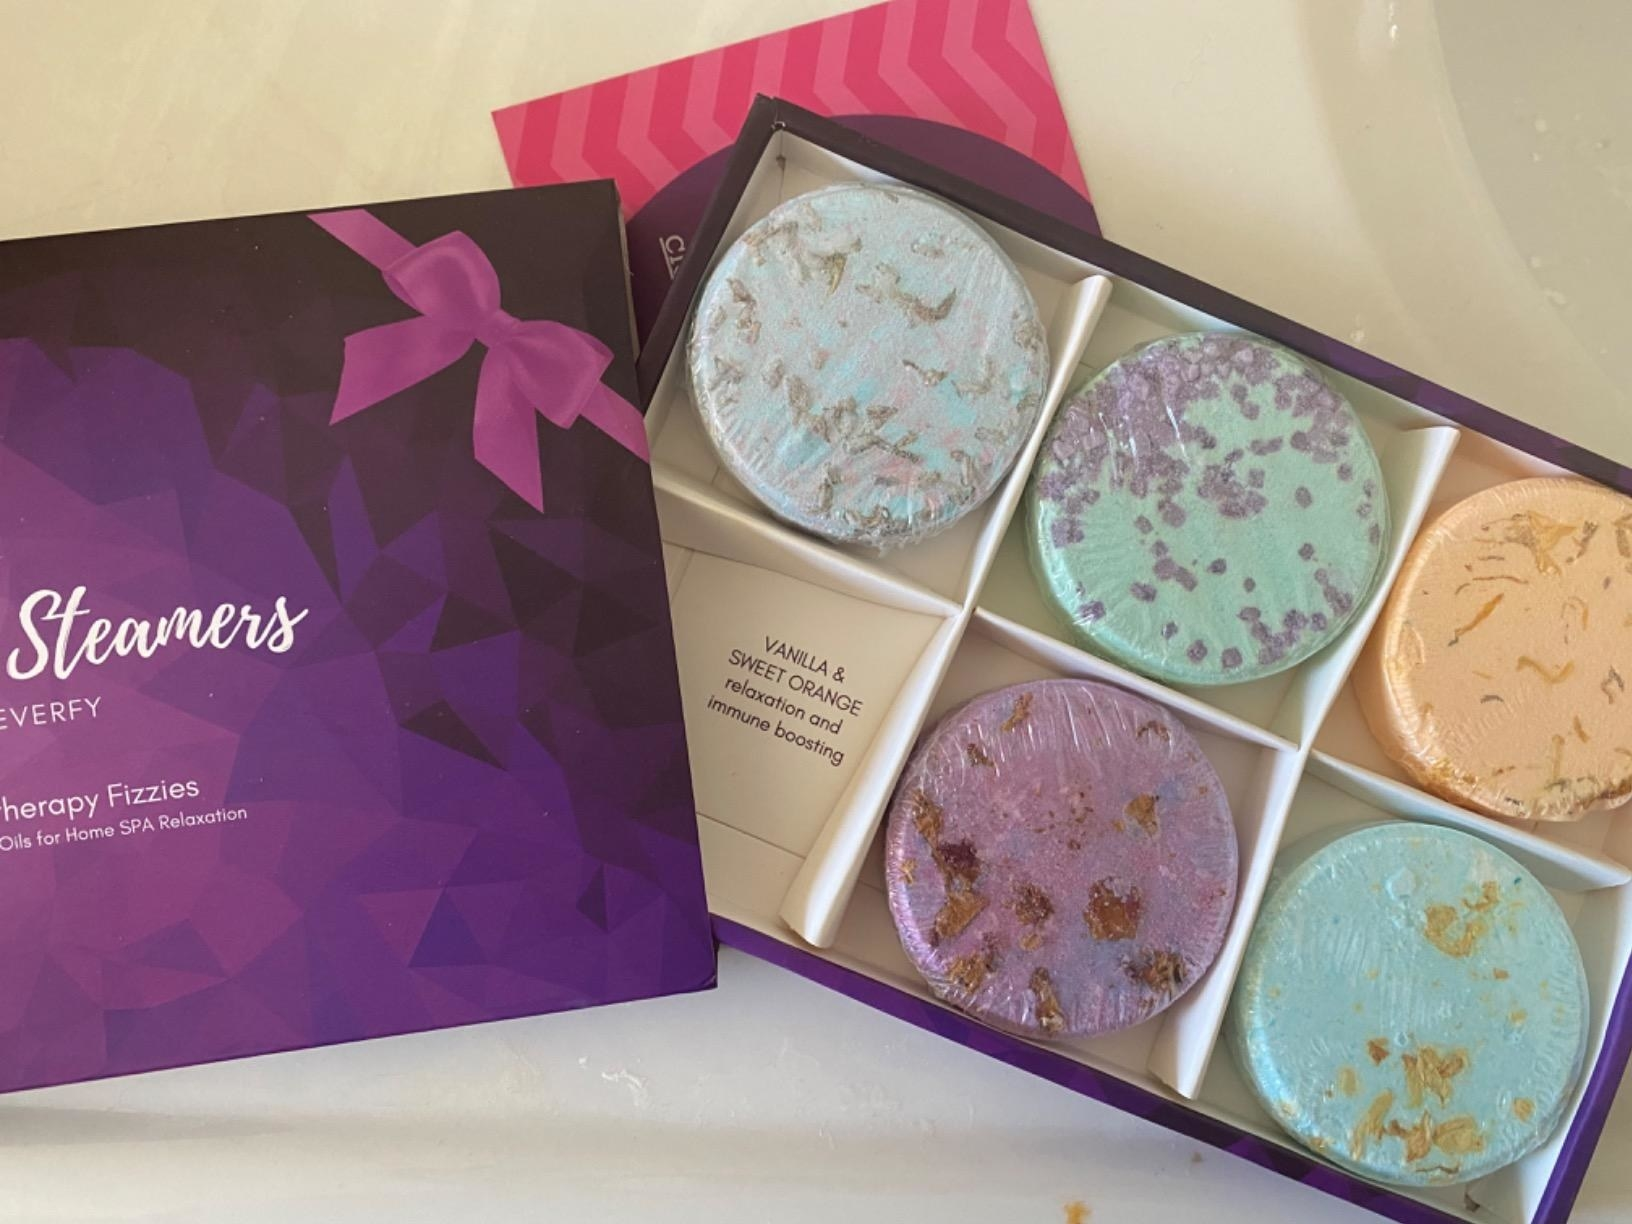 Reviewer set of six bath bombs in box on table